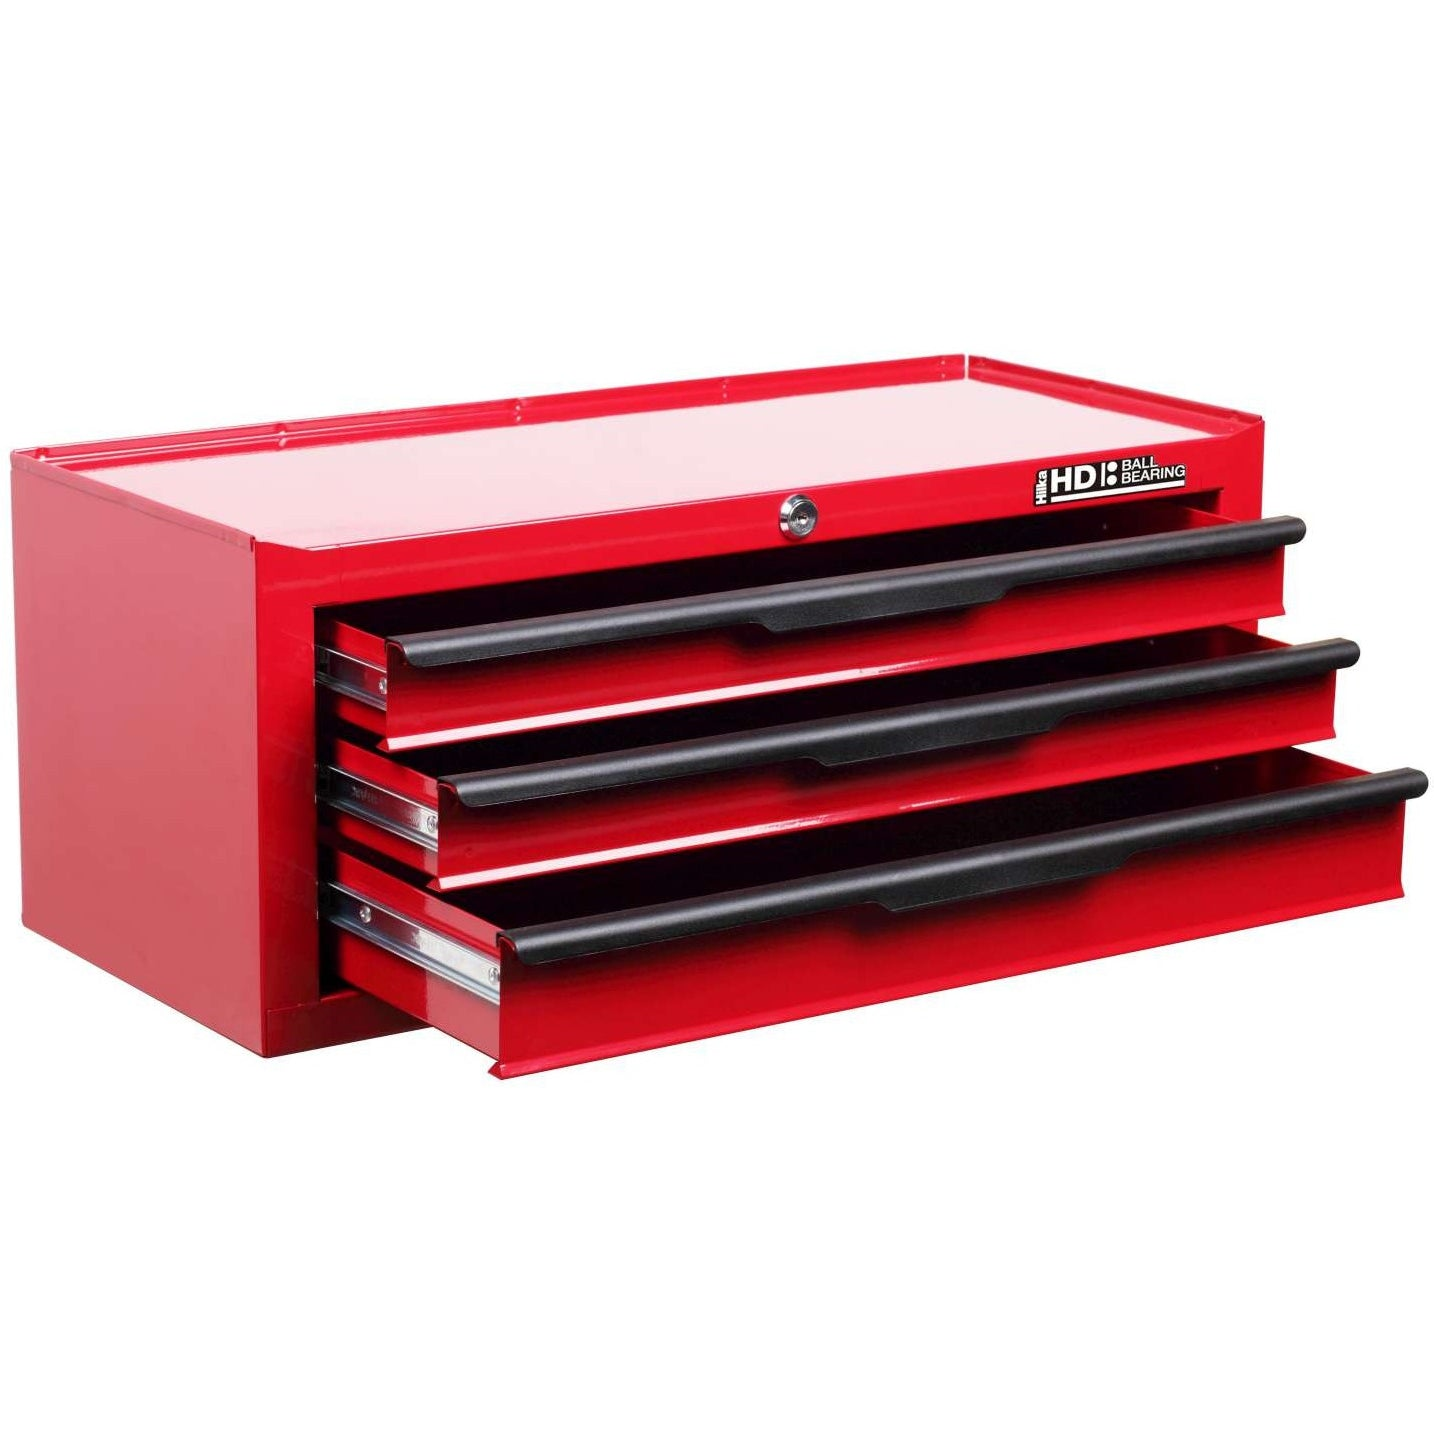 Hilka G301C3BBS HD Middle Chest Tool Box 3 Drawers Red - Elite ...